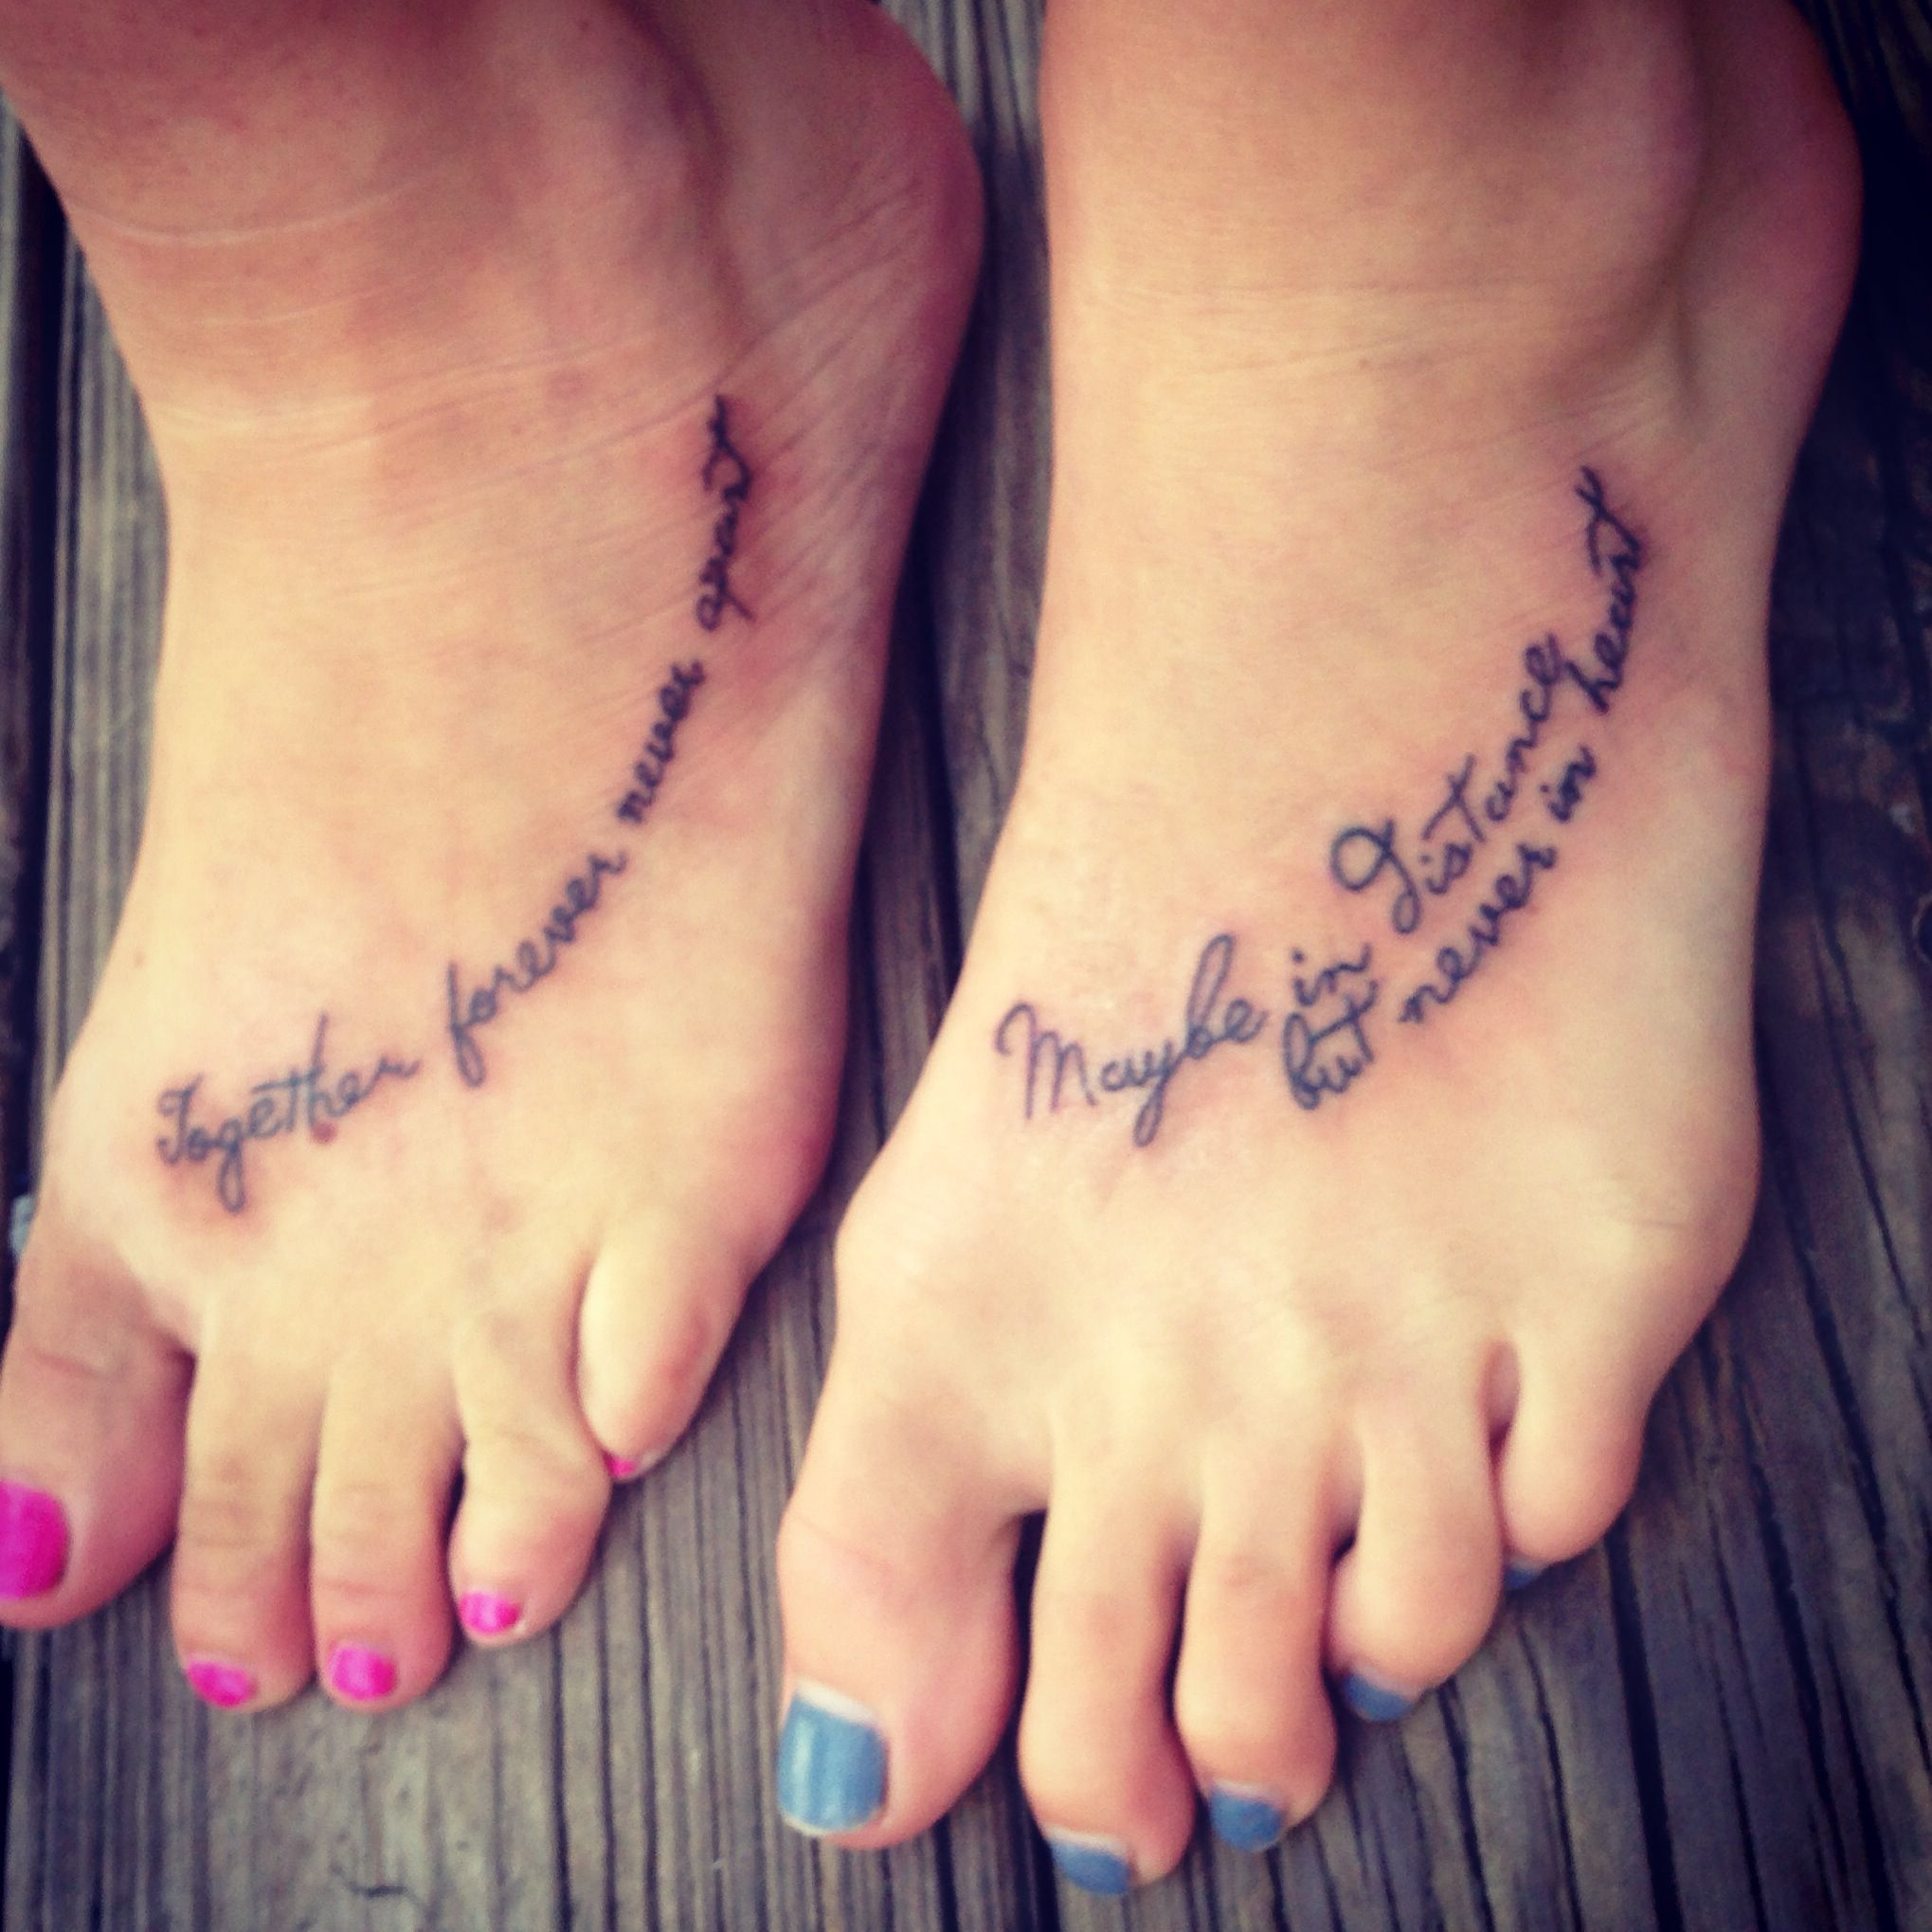 Mom and daughter tattoo-together forever never apart ...